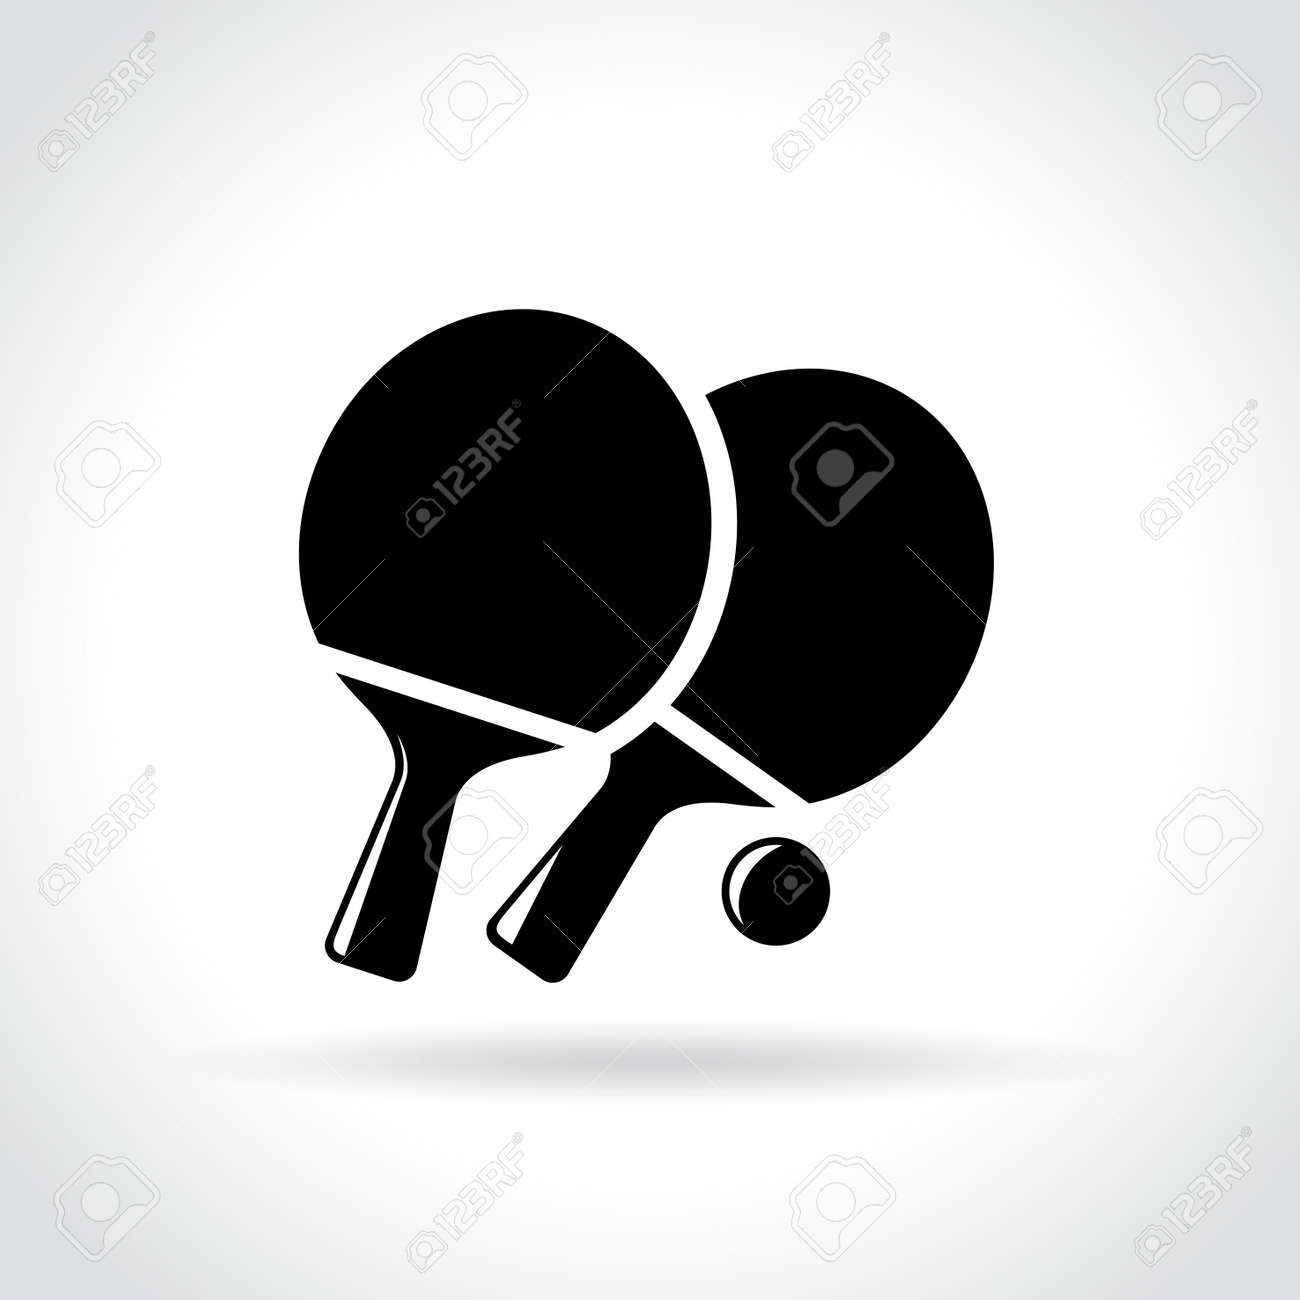 illustration of ping pong icon on white background royalty free